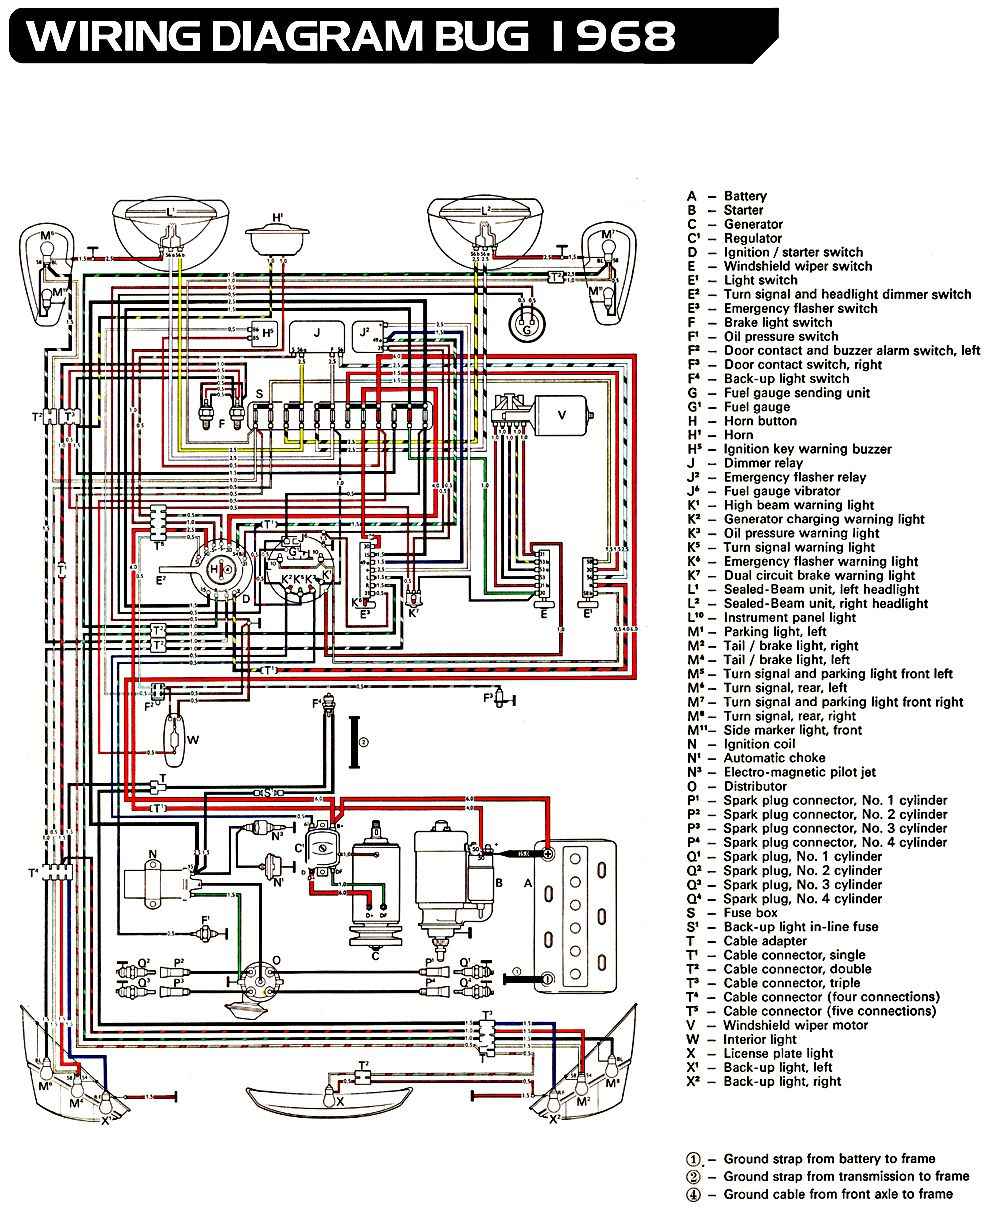 3a1908112d3826270ed5e3be362292bf vw bug ignition wiring diagram 73 vw wiring diagram free 1973 Super Beetle Wiring Diagram at reclaimingppi.co